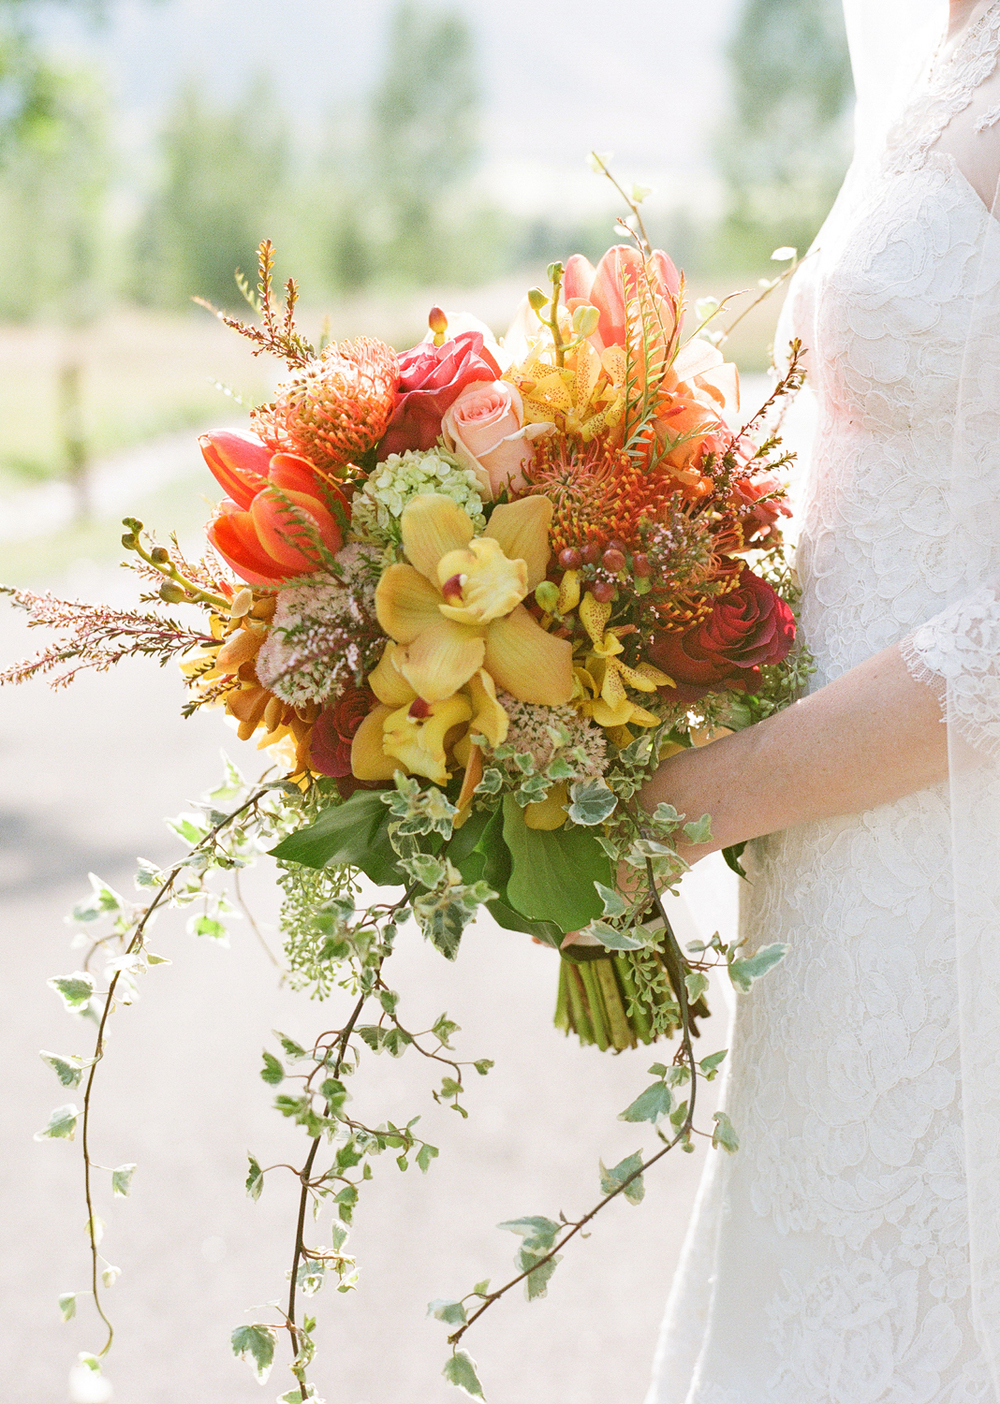 Fall bridal bouquet with red, yellow, orange and green flowers